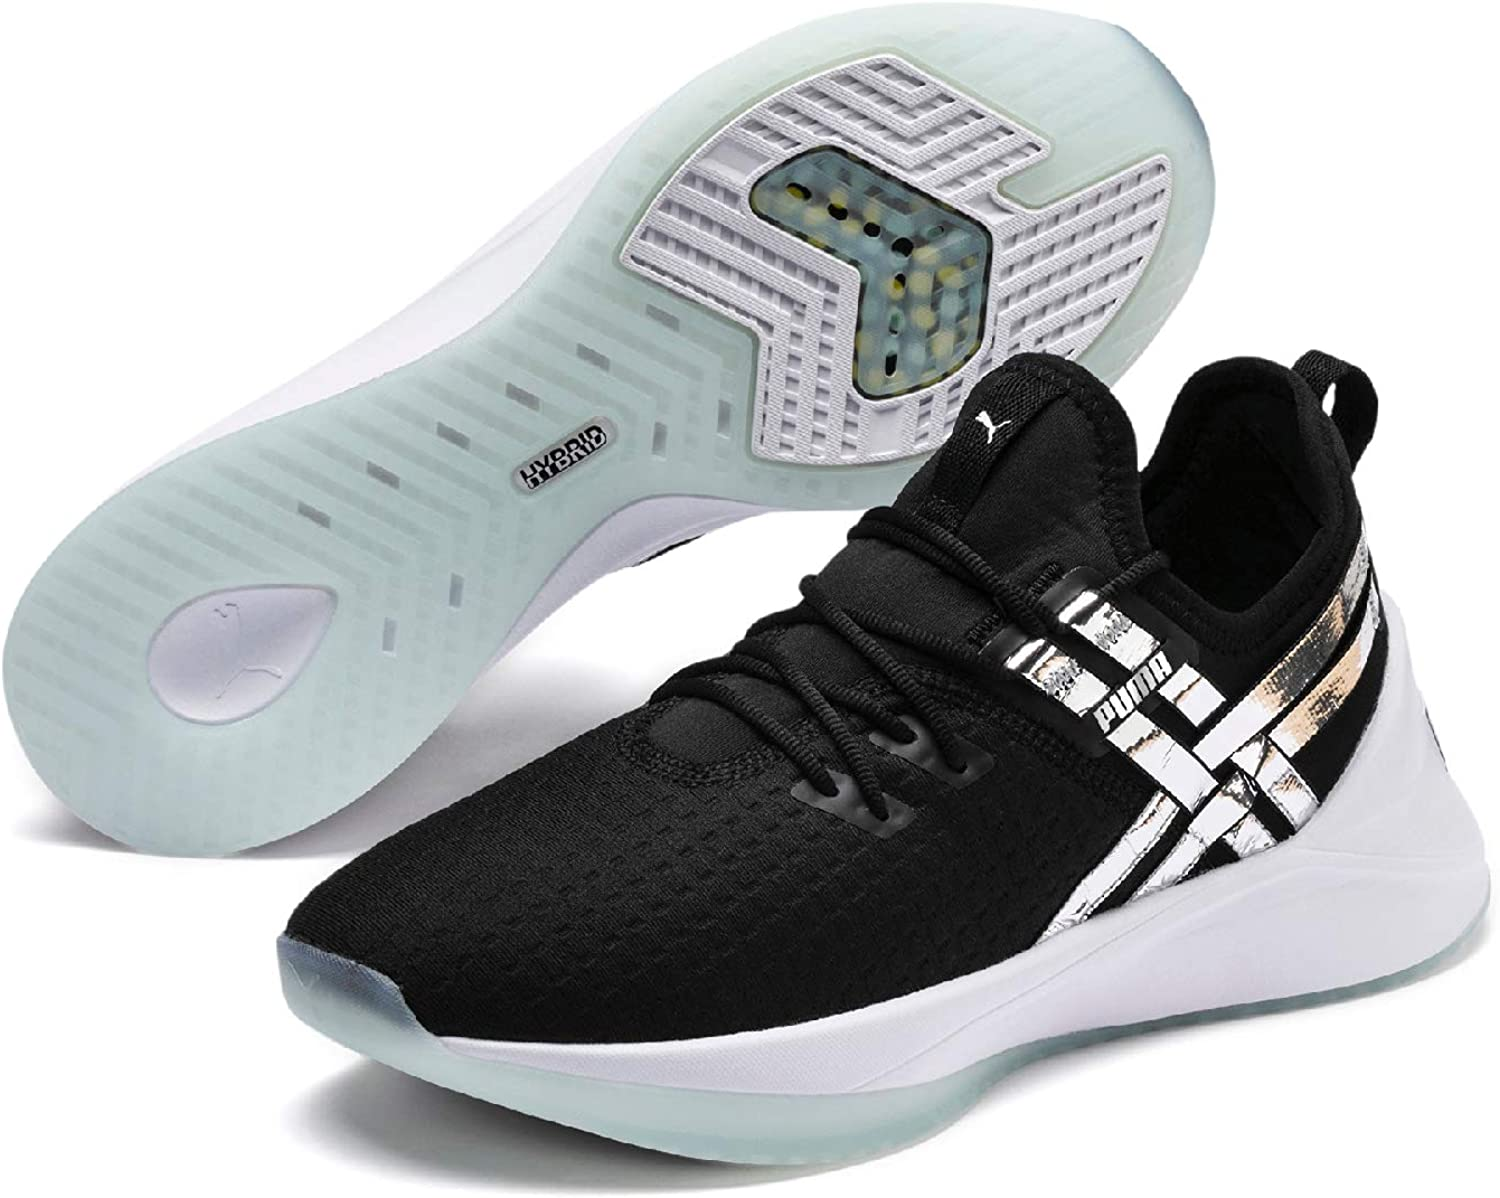 Puma Jaab XT TZ Women's Training shoes - SS19